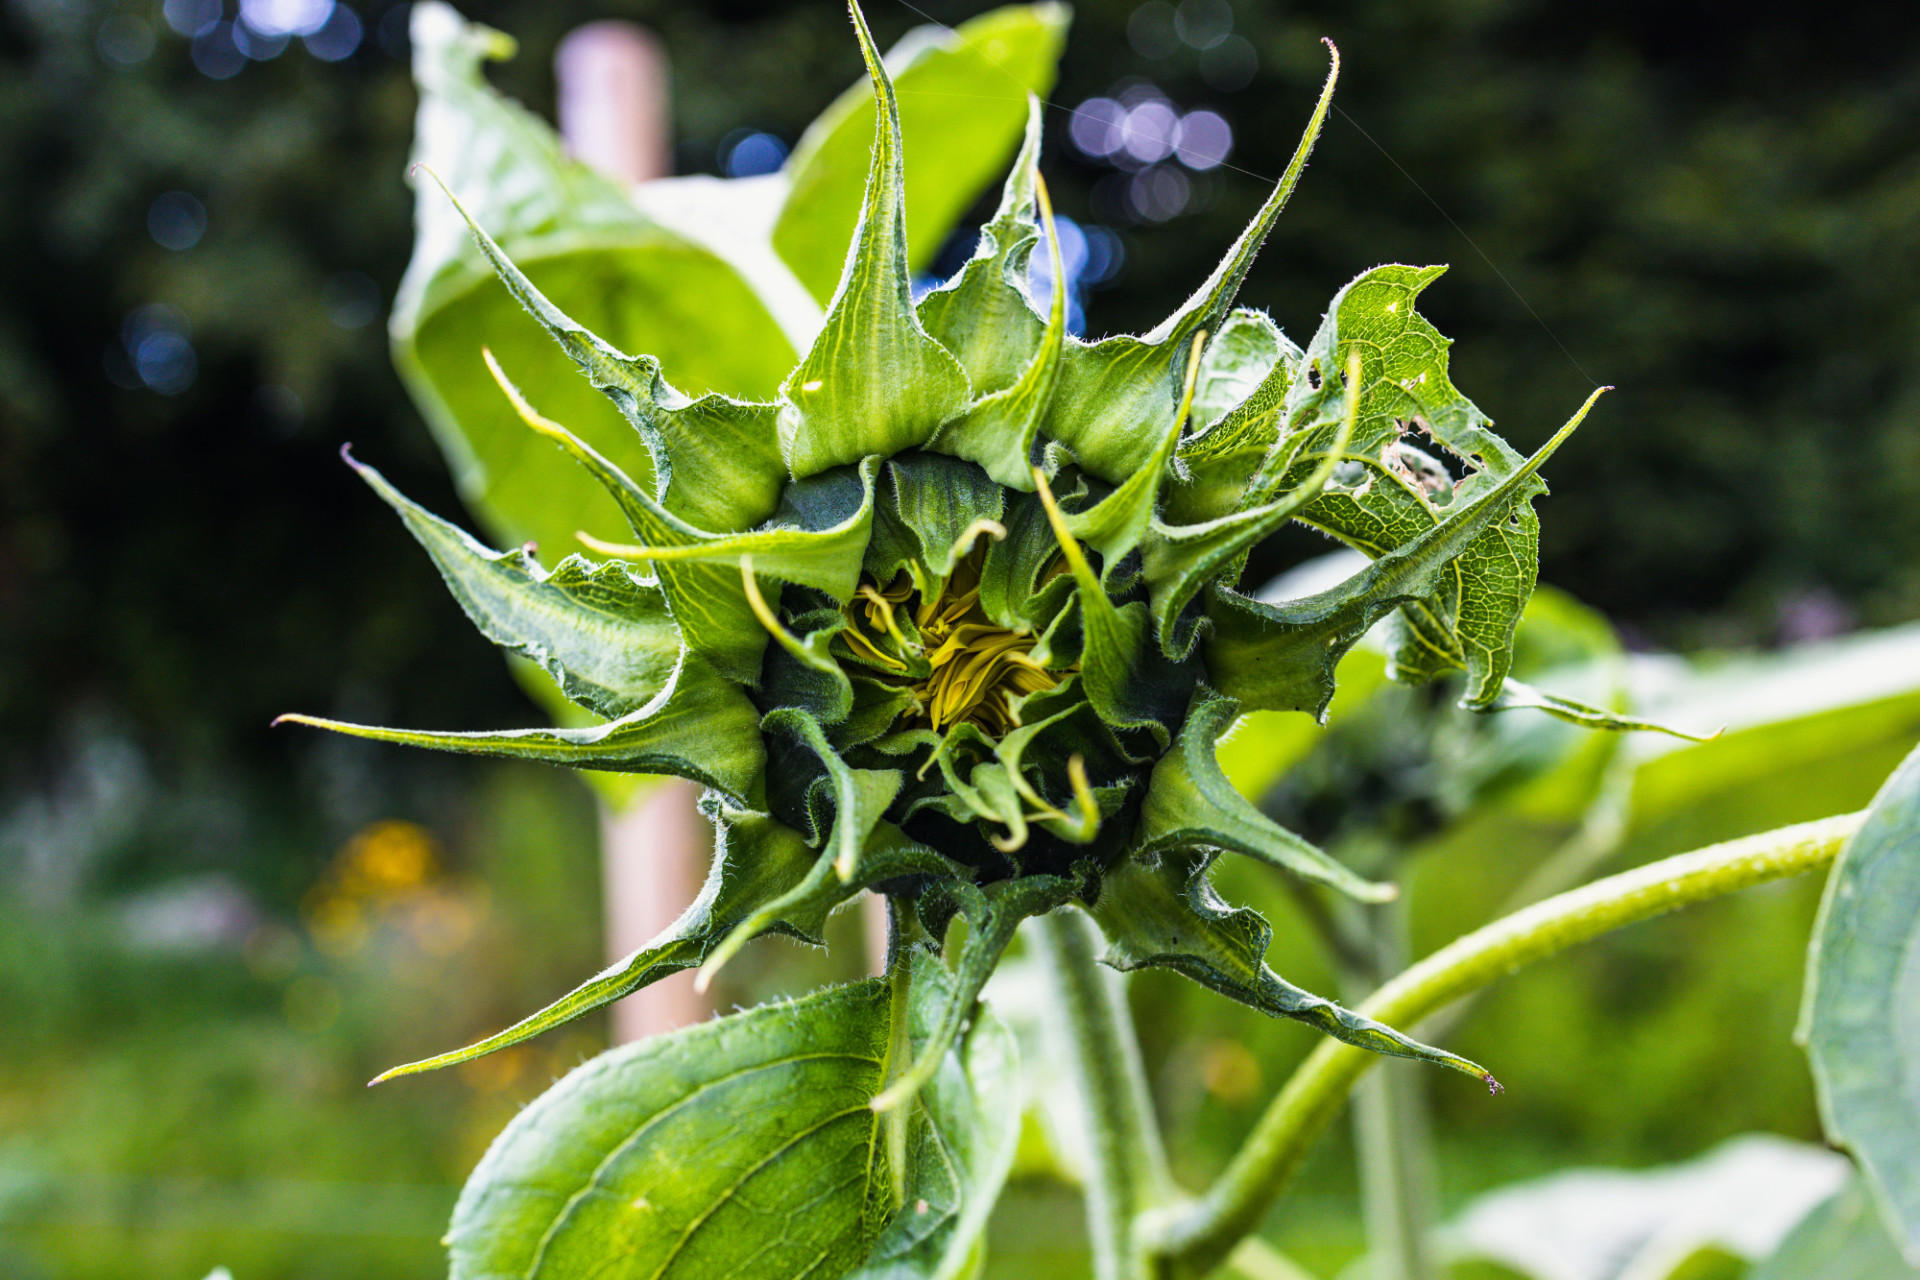 Sunflower just before blooming